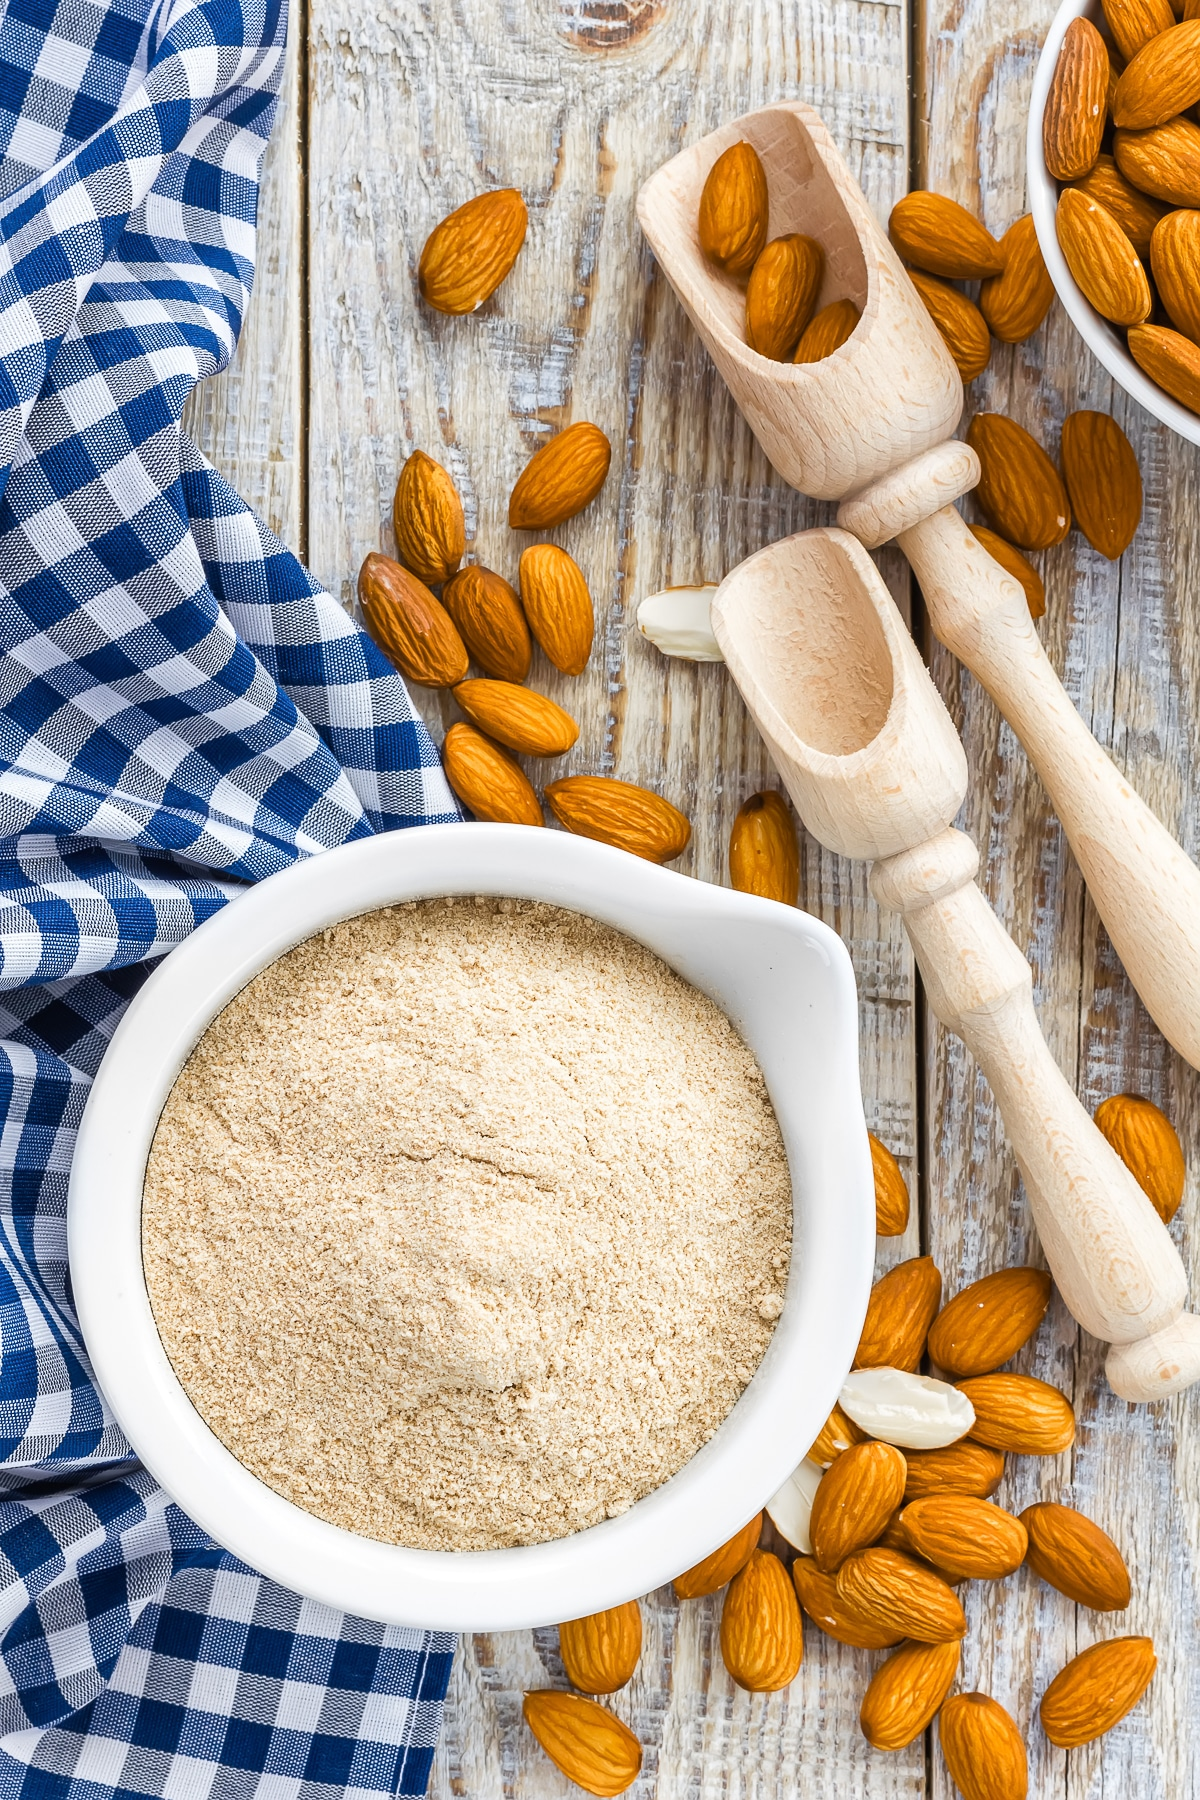 A small bowl of fine ground almond flour on top of a blue gingham napkins surrounded by wooden scoops and whole raw almonds